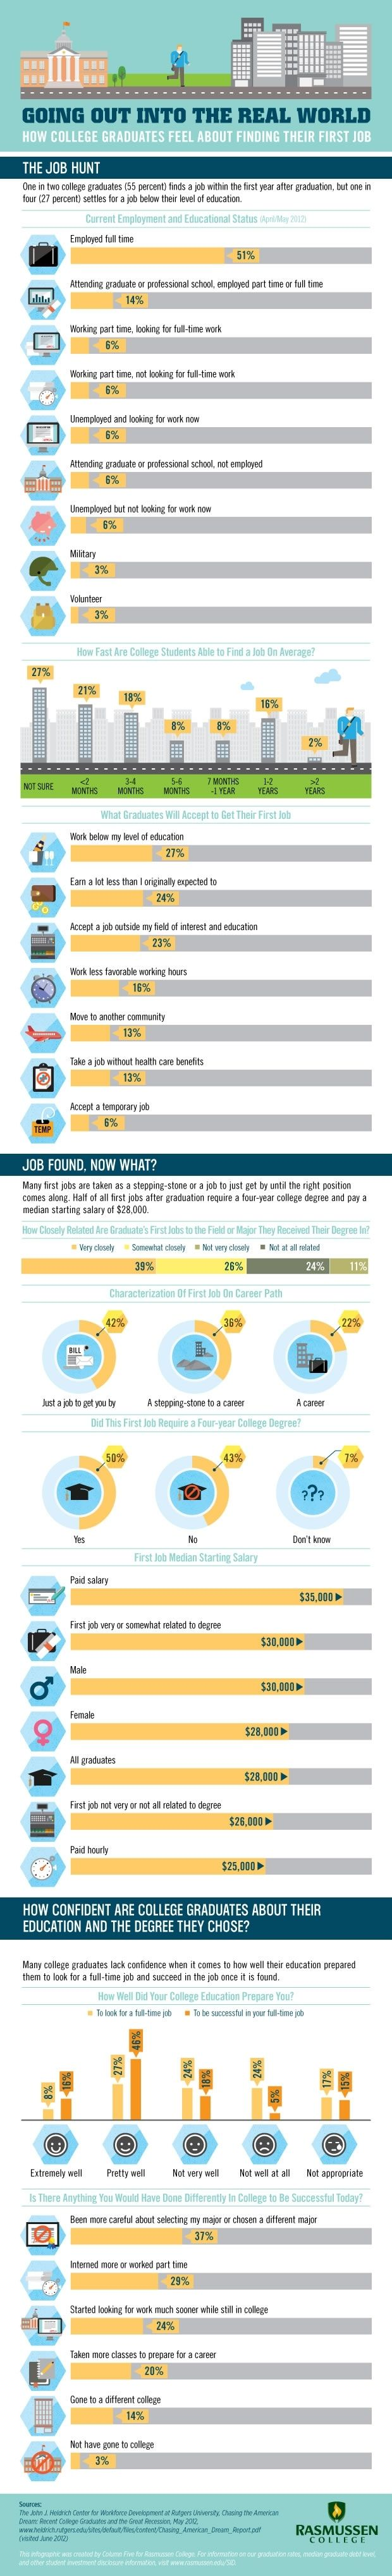 best images about stats on job hunting student how college graduates feel about finding their first job